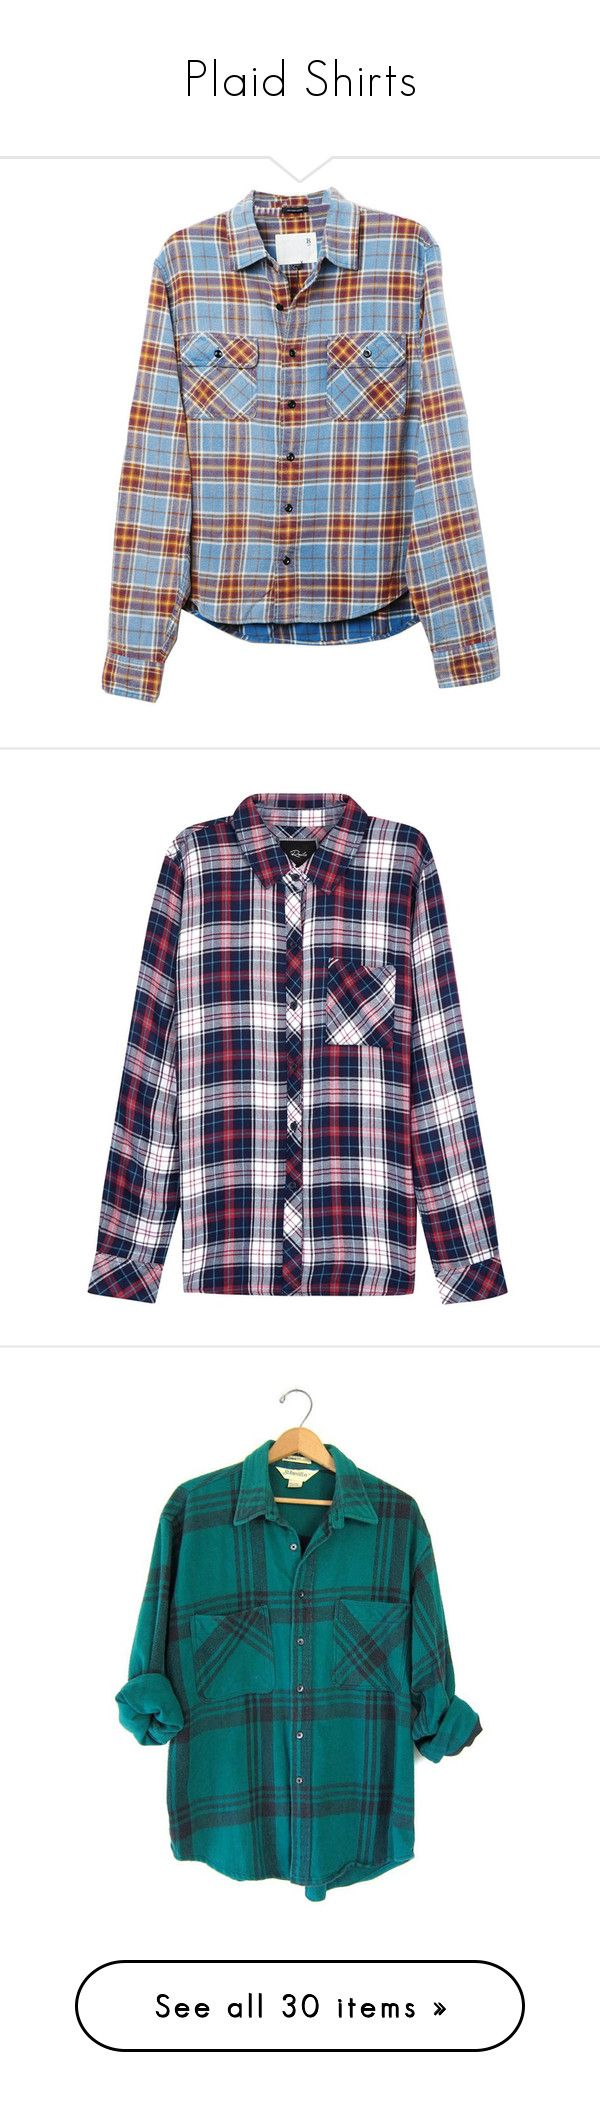 """Plaid Shirts"" by stargirl234 ❤ liked on Polyvore featuring tops, tartan plaid shirt, plaid shirts, grunge plaid shirt, blue shirt, blue top, shirts, button down, flannel and plaid"